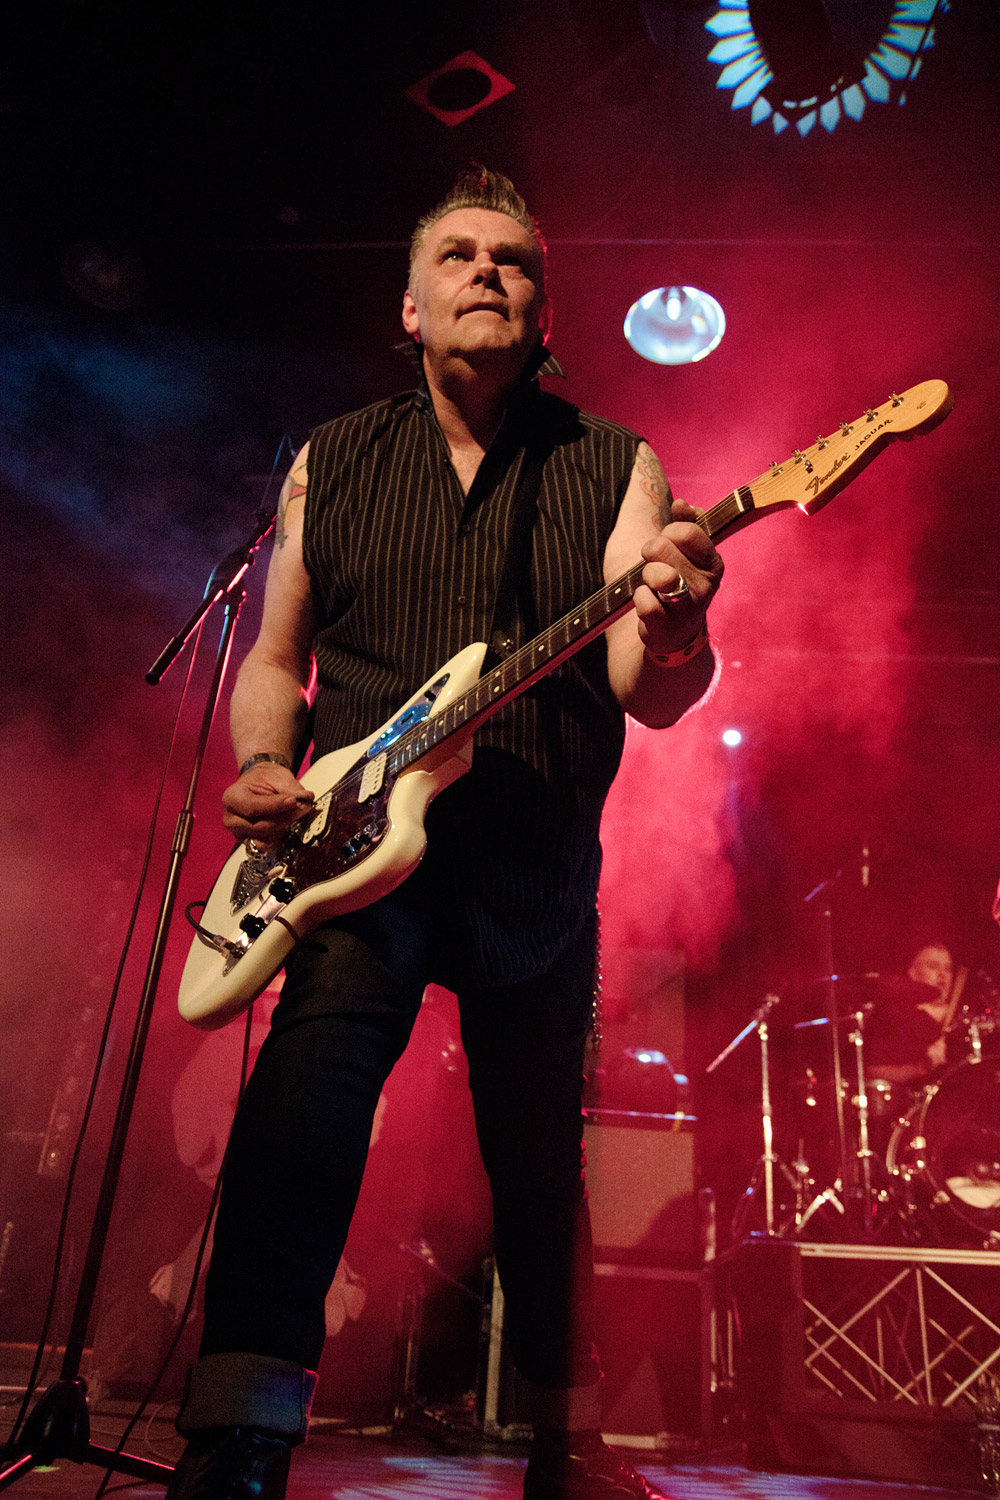 The Membranes @ 229, London 14/06/14